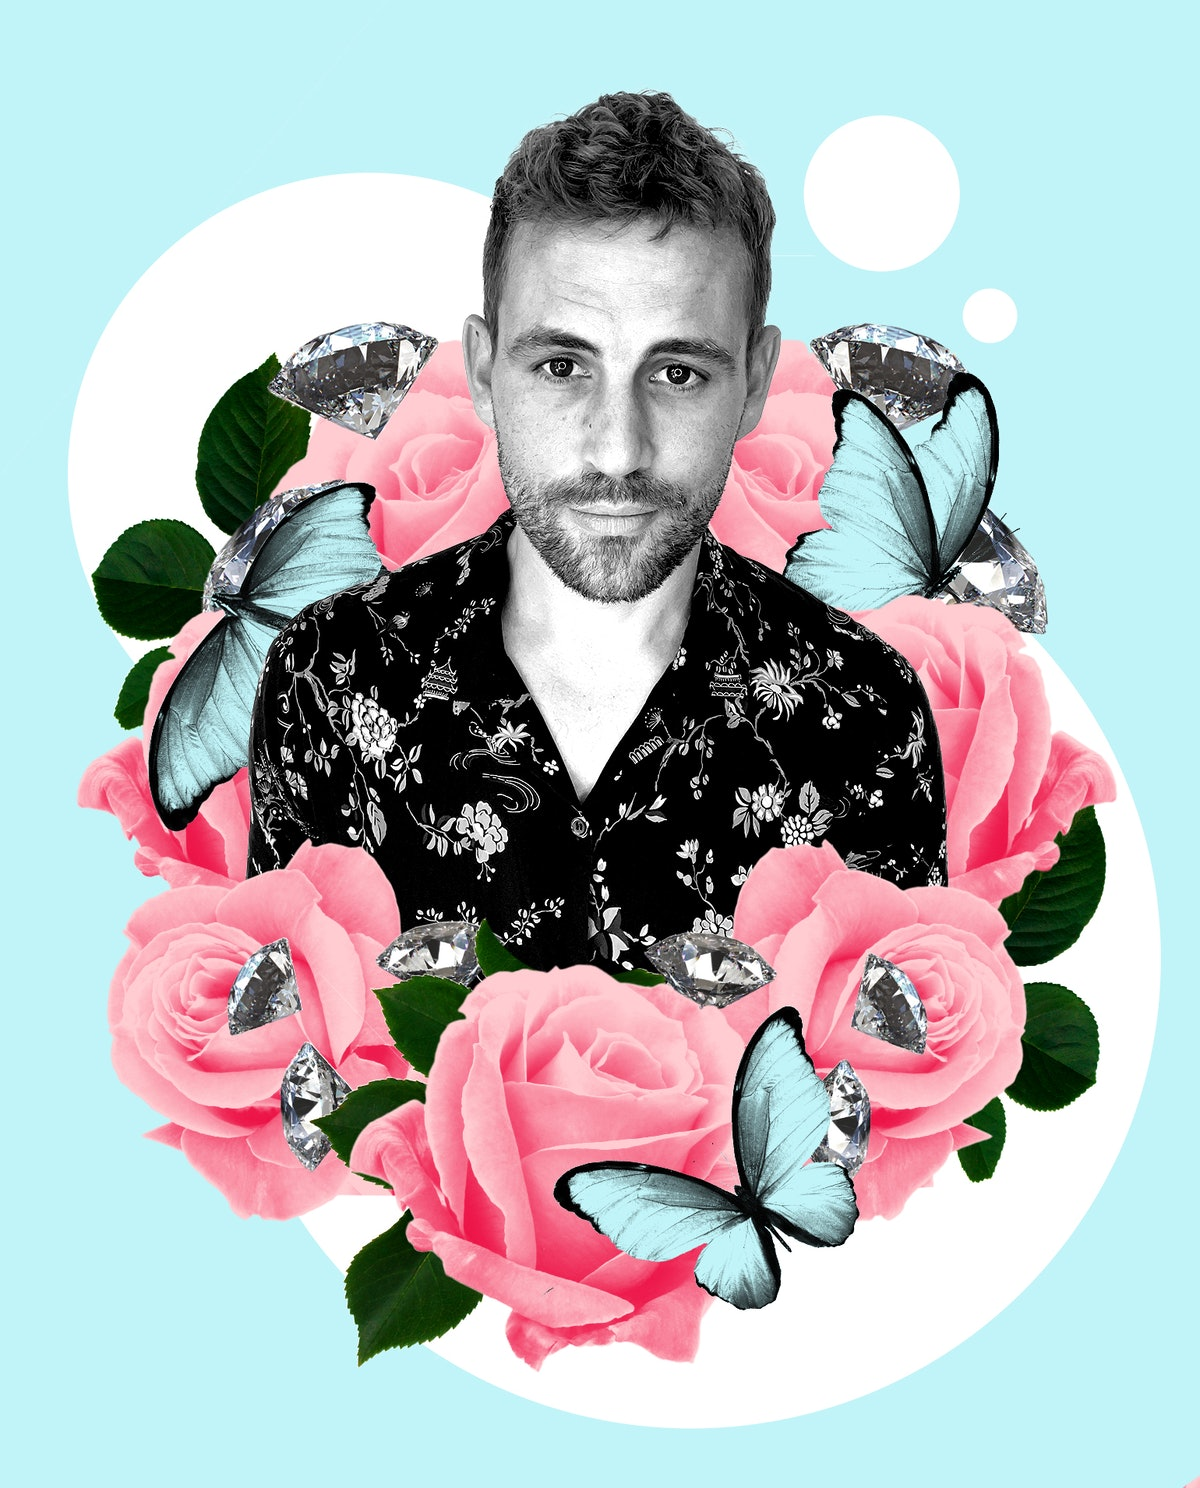 Nick Viall gives dating advice on his podcast, 'The Viall Files.'